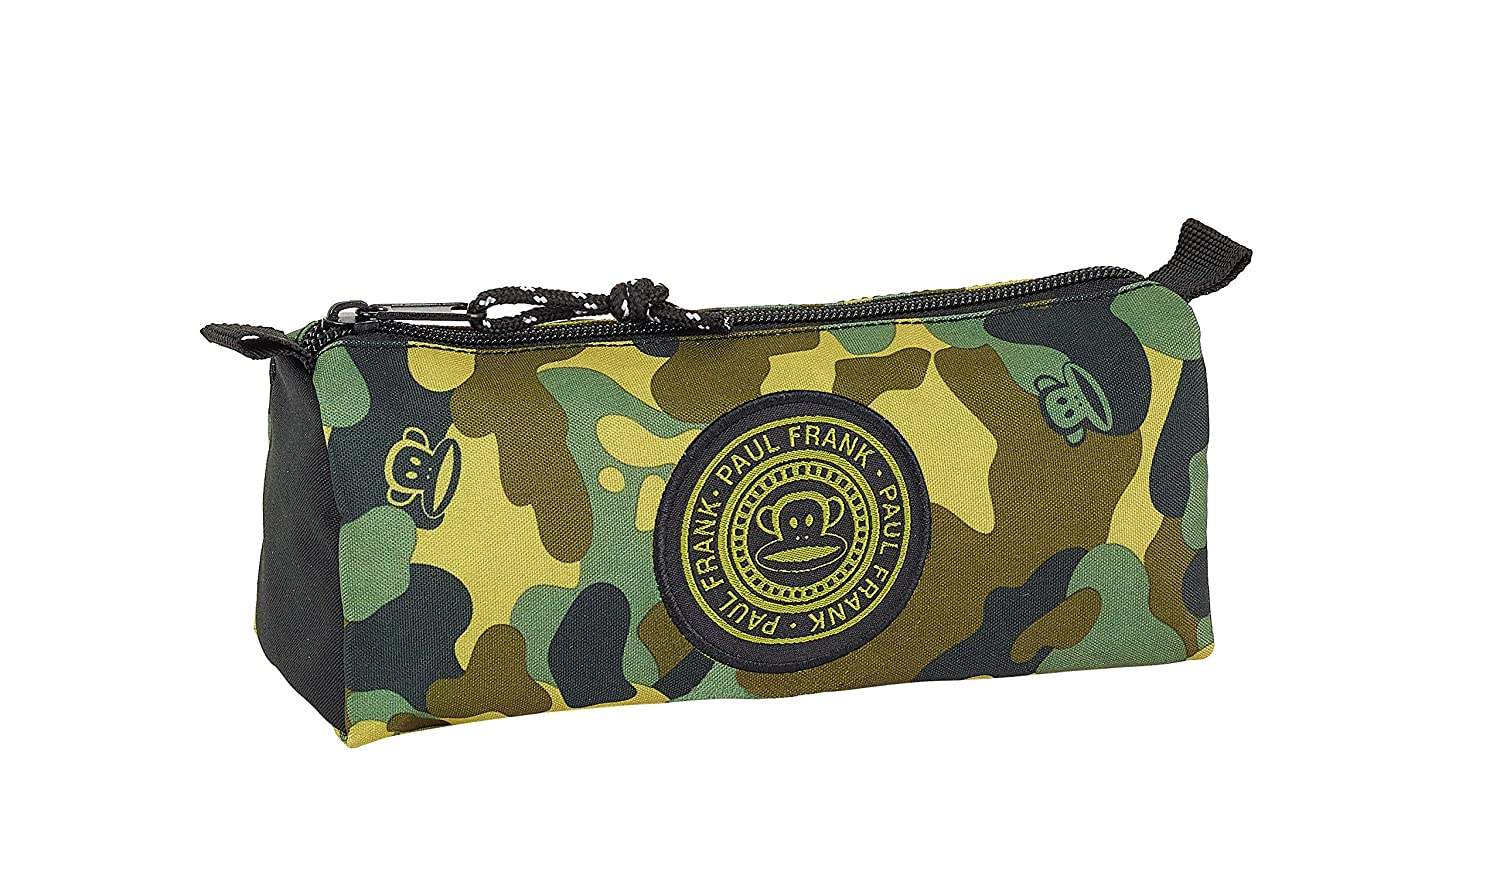 Paul Frank Camo Oficial Estuche Escolar 210x70x80mm: Amazon ...